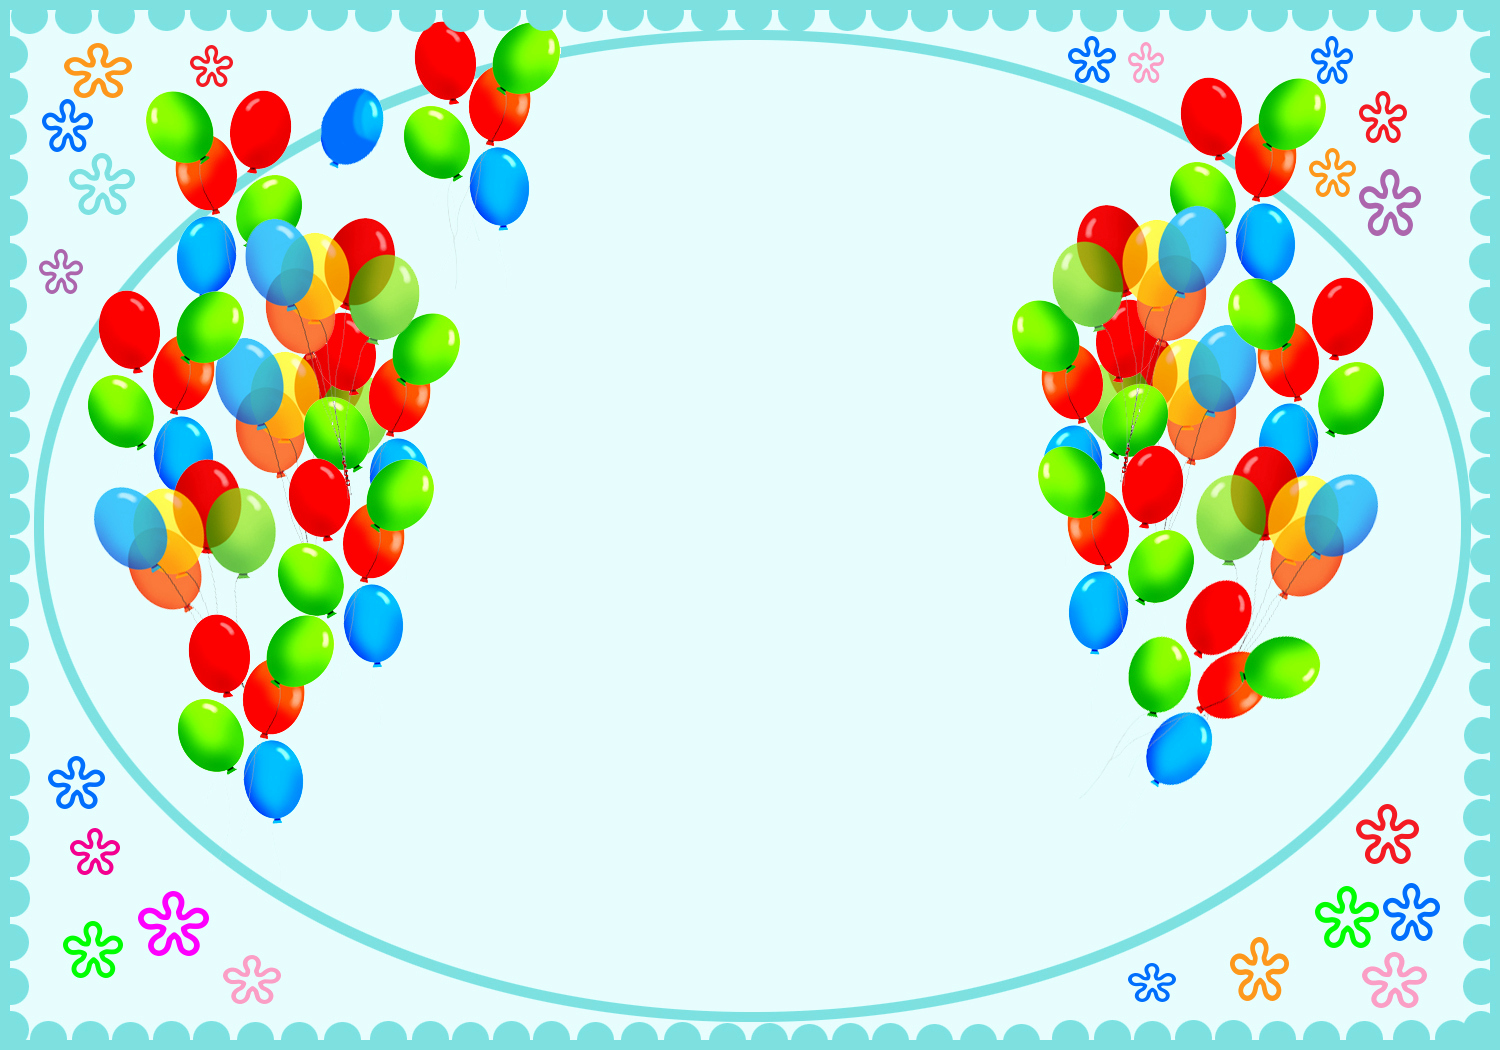 Printable Greeting Card Templates Best Of Happy Birthday Card for You – Free Printable Greeting Cards